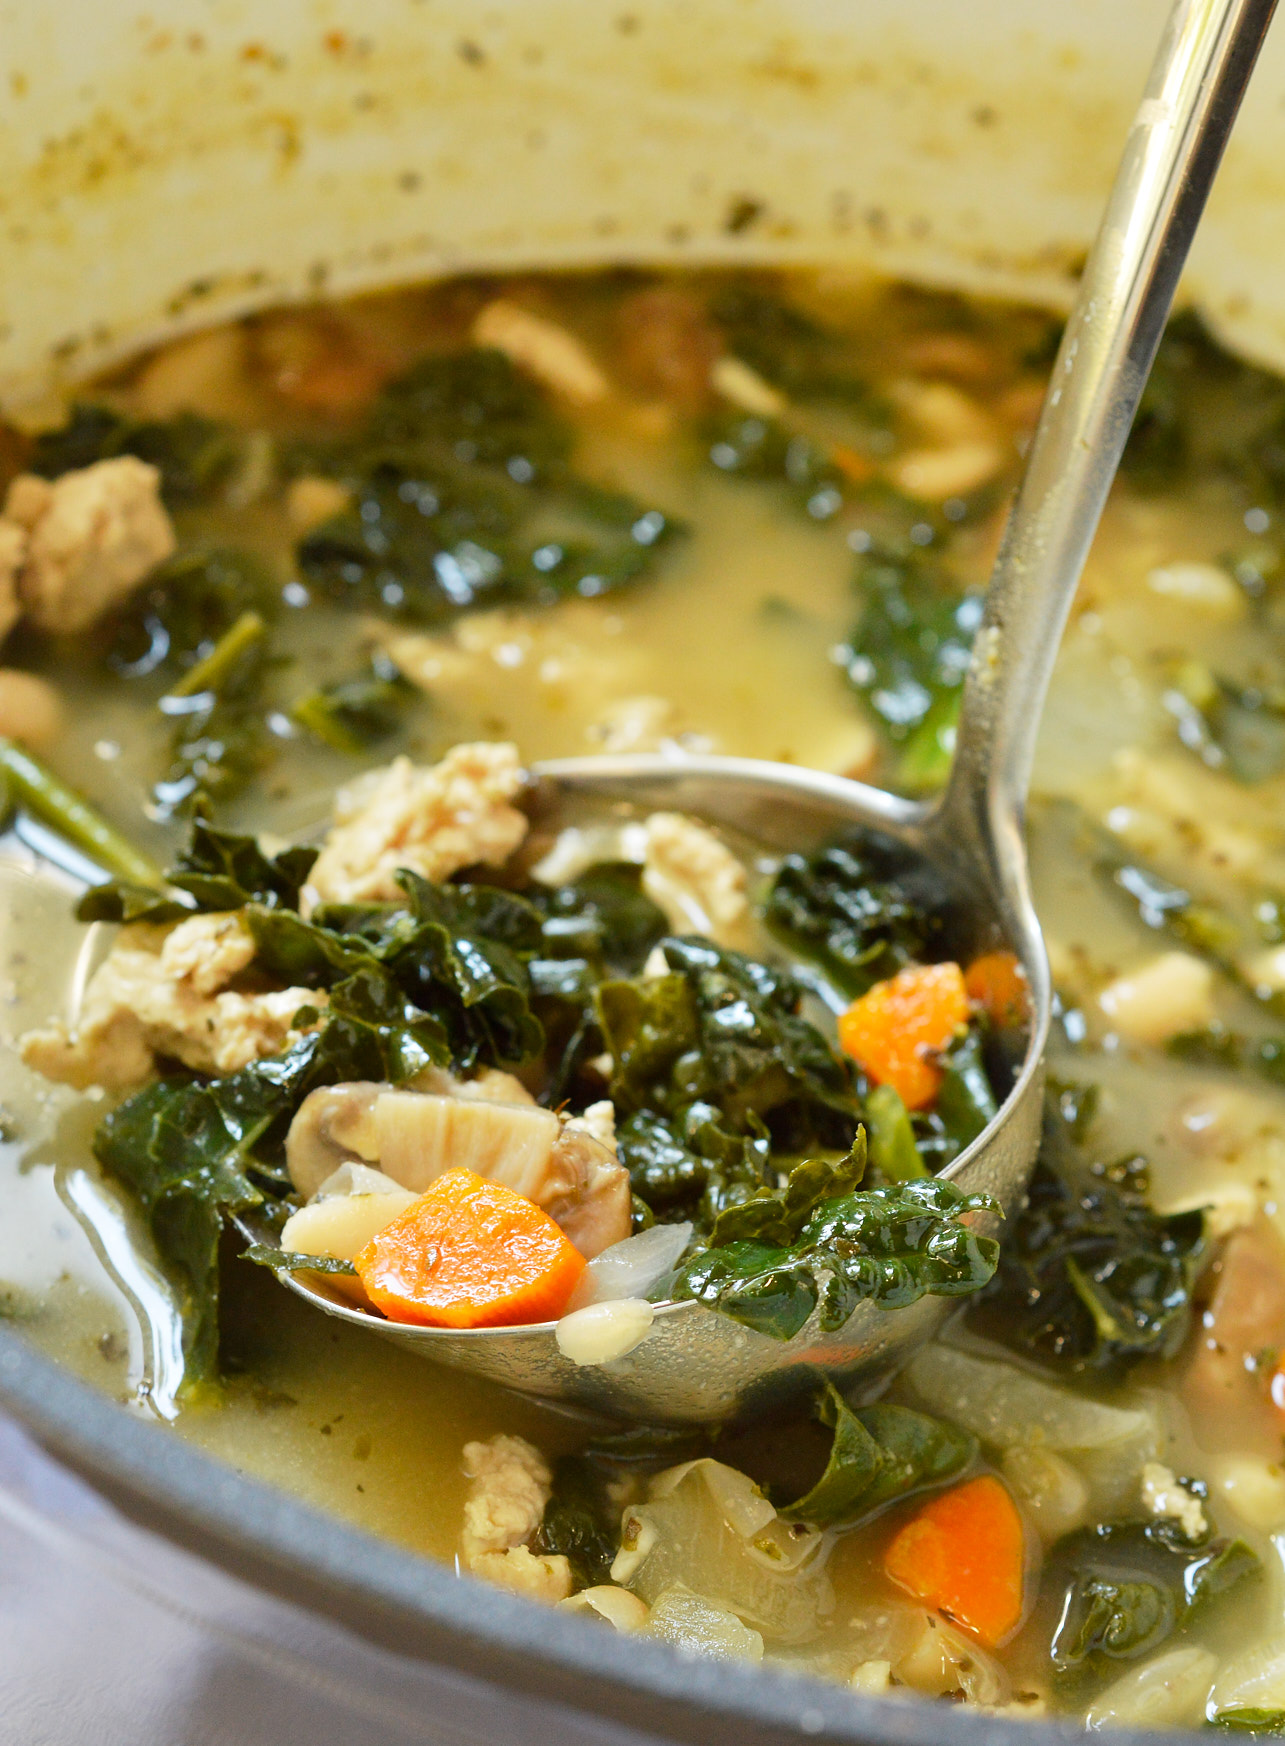 Meal planning just got easier with this Vegetable Turkey Soup dinner recipe. Lean turkey, fresh kale, carrots, mushrooms and white beans make this hearty meal nutritious and tasty!